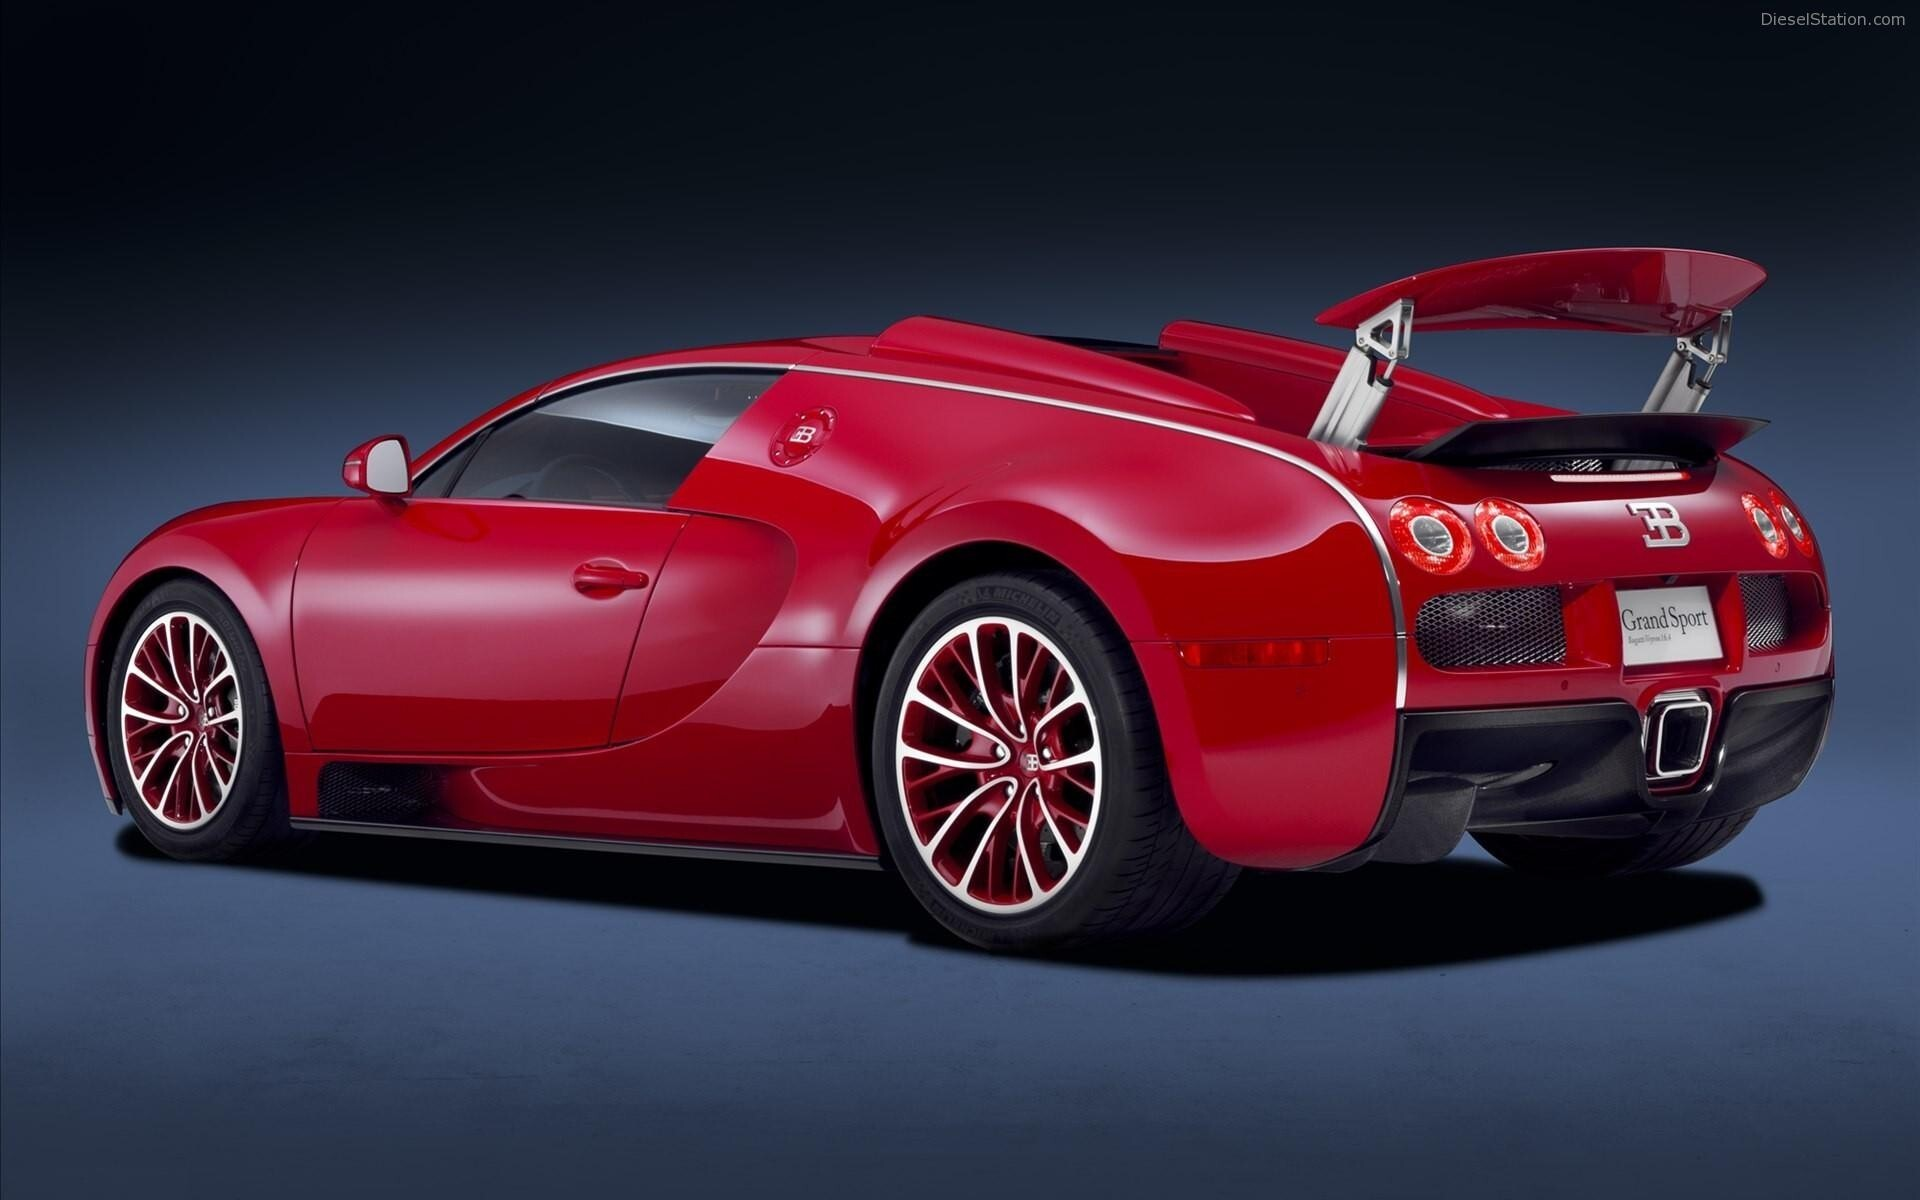 Red Bugatti Veyron Grand Sport Car Wallpapers | HD Wallpapers